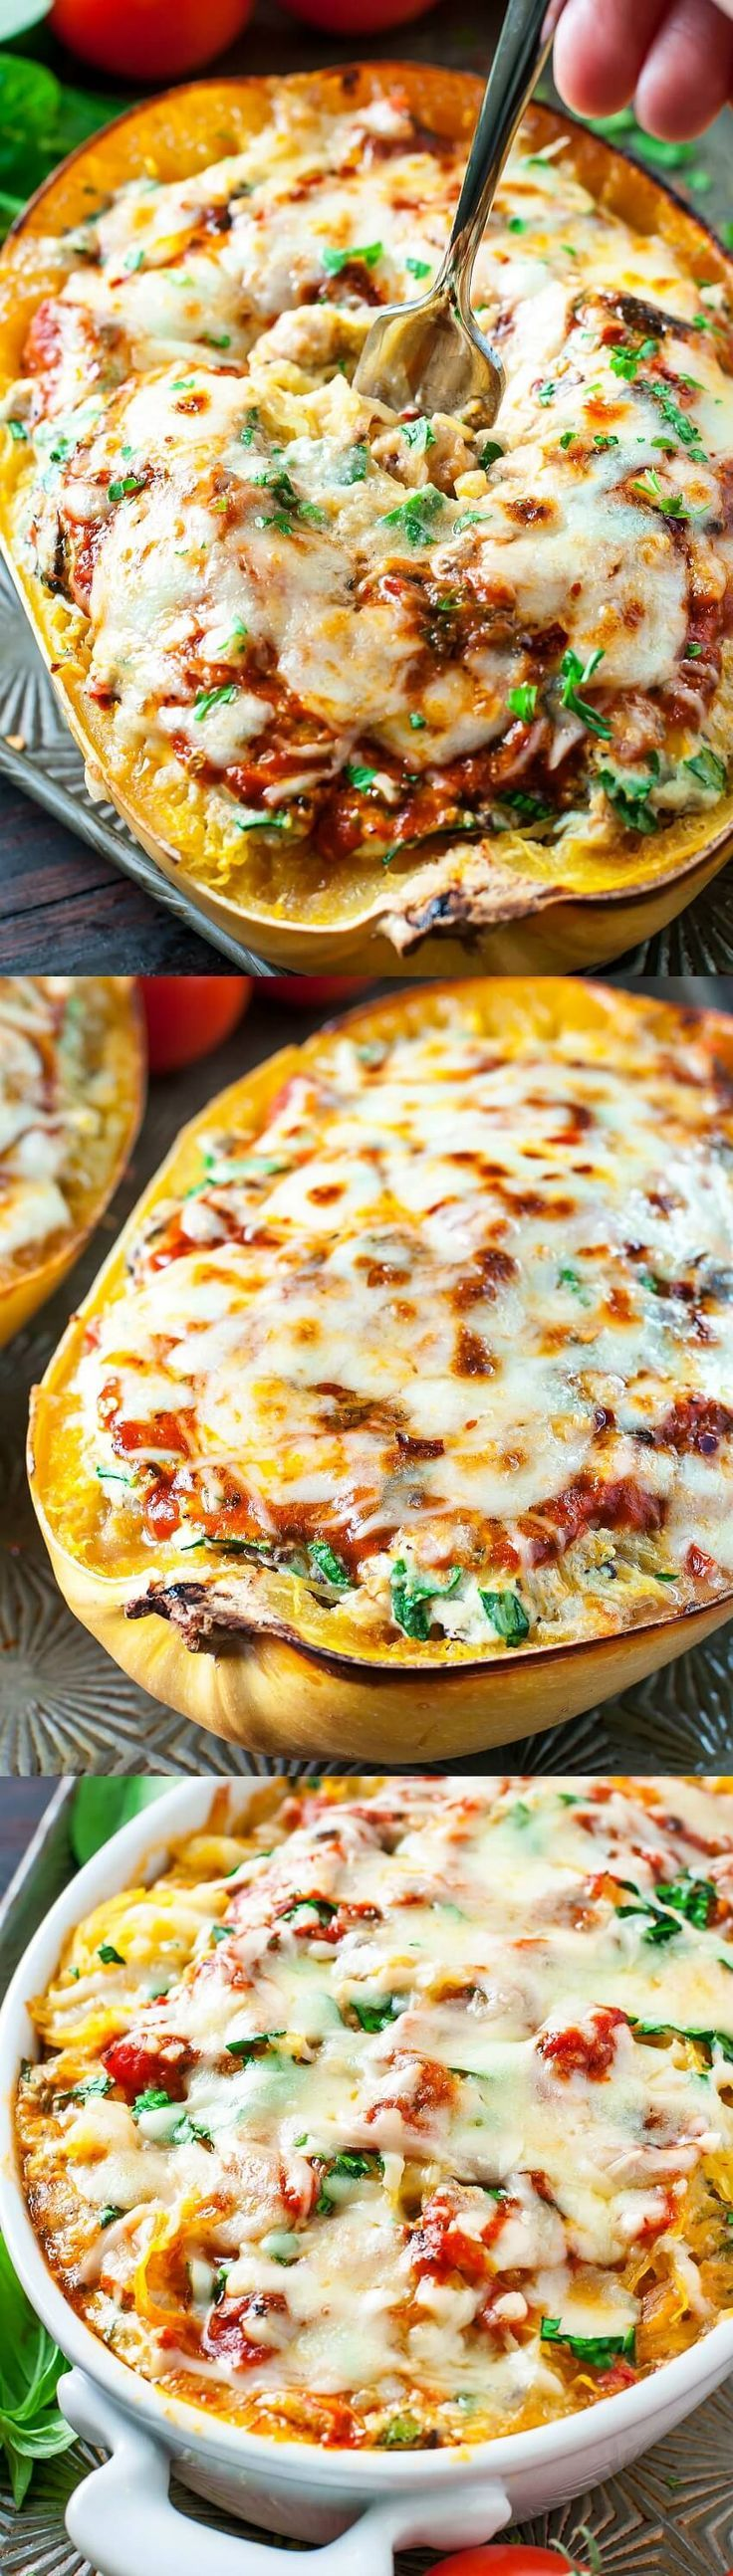 This easy Cheesy Vegetarian Spaghetti Squash Lasagna is a tasty low-carb and gluten-free alternative to traditional lasagna that is sure to satisfy all your comfort food cravings!